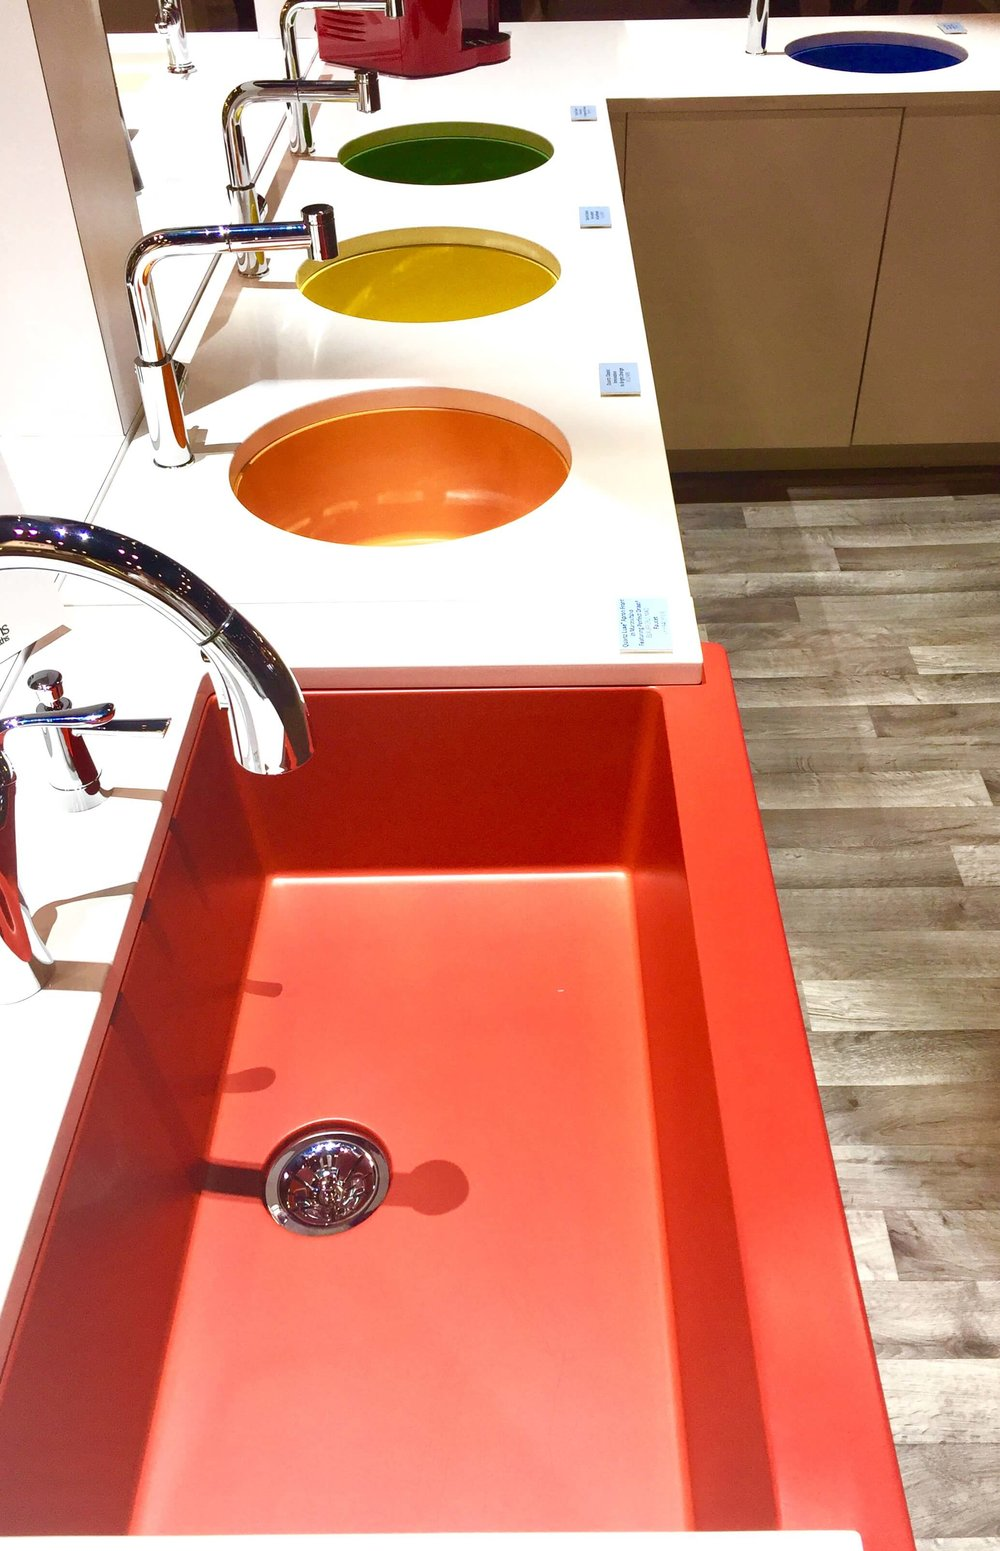 colored bathroom fixtures kitchen and bath trends at kbis 2017 sinks and faucets 12374